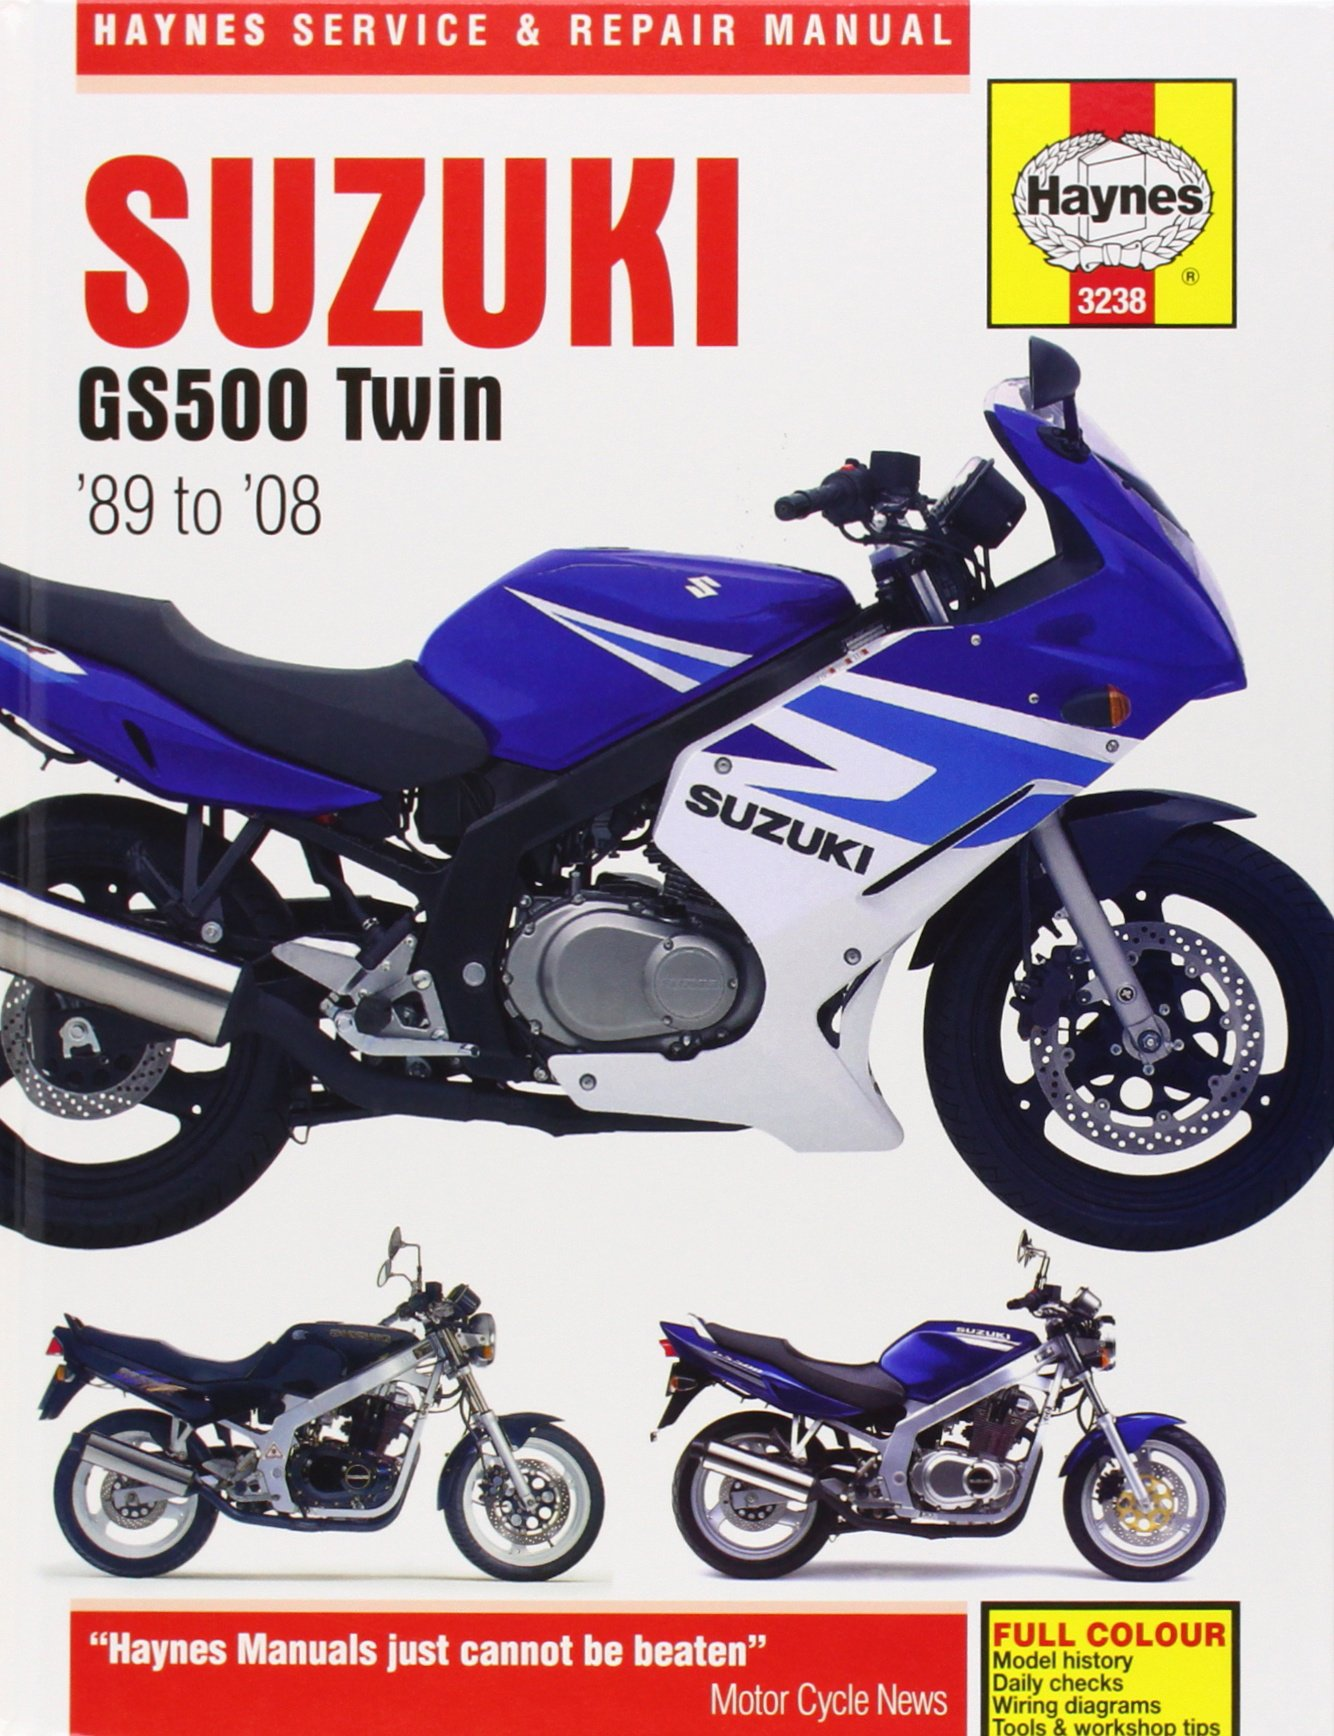 Suzuki GS500 Twin 1989-2008 (Haynes Service & Repair Manual): John Haynes:  9781844258819: Amazon.com: Books